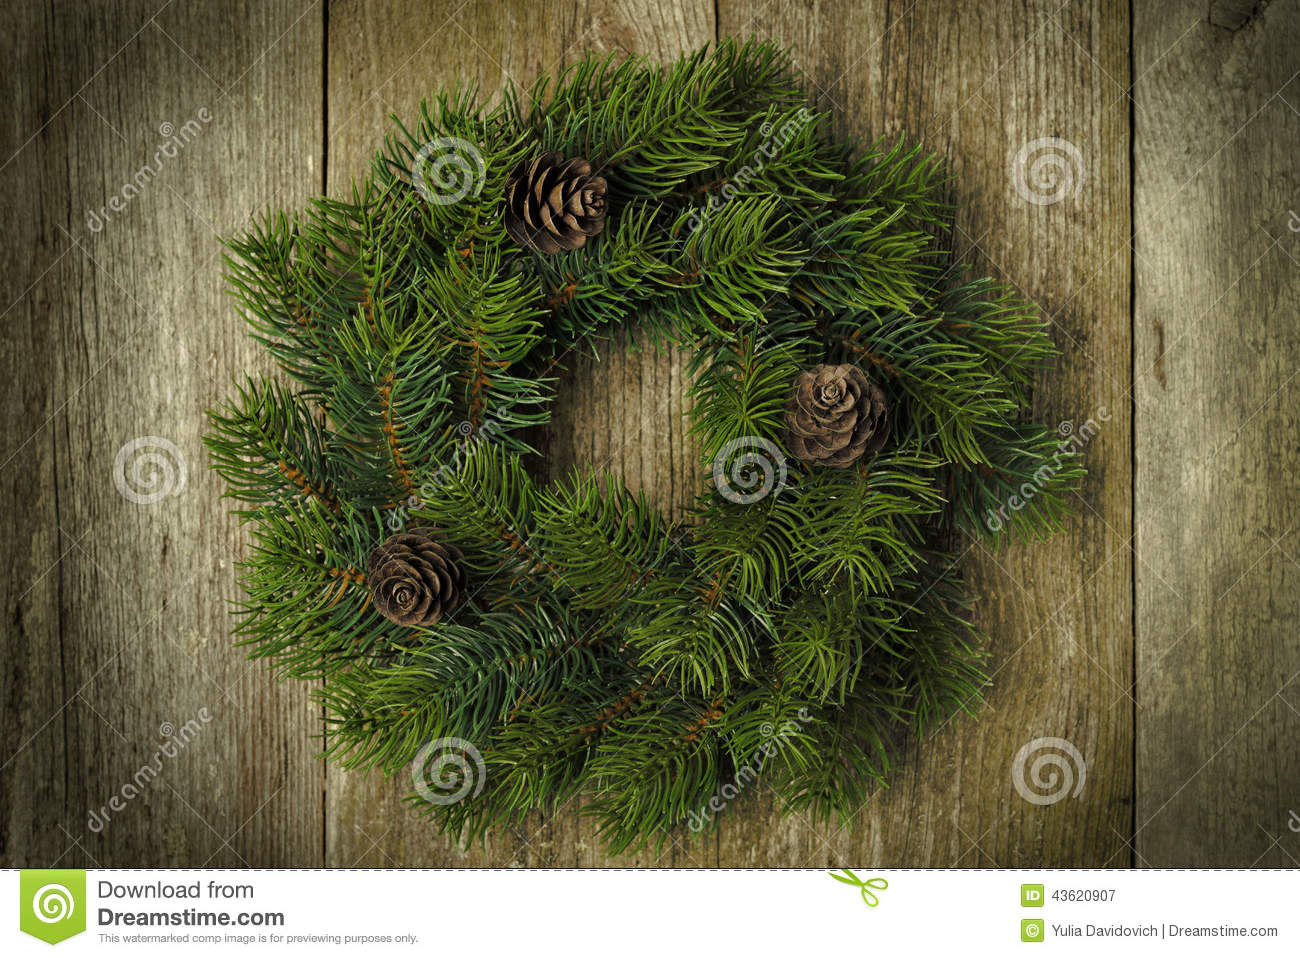 Christmas fir wreath on vintage wooden background, horizontal